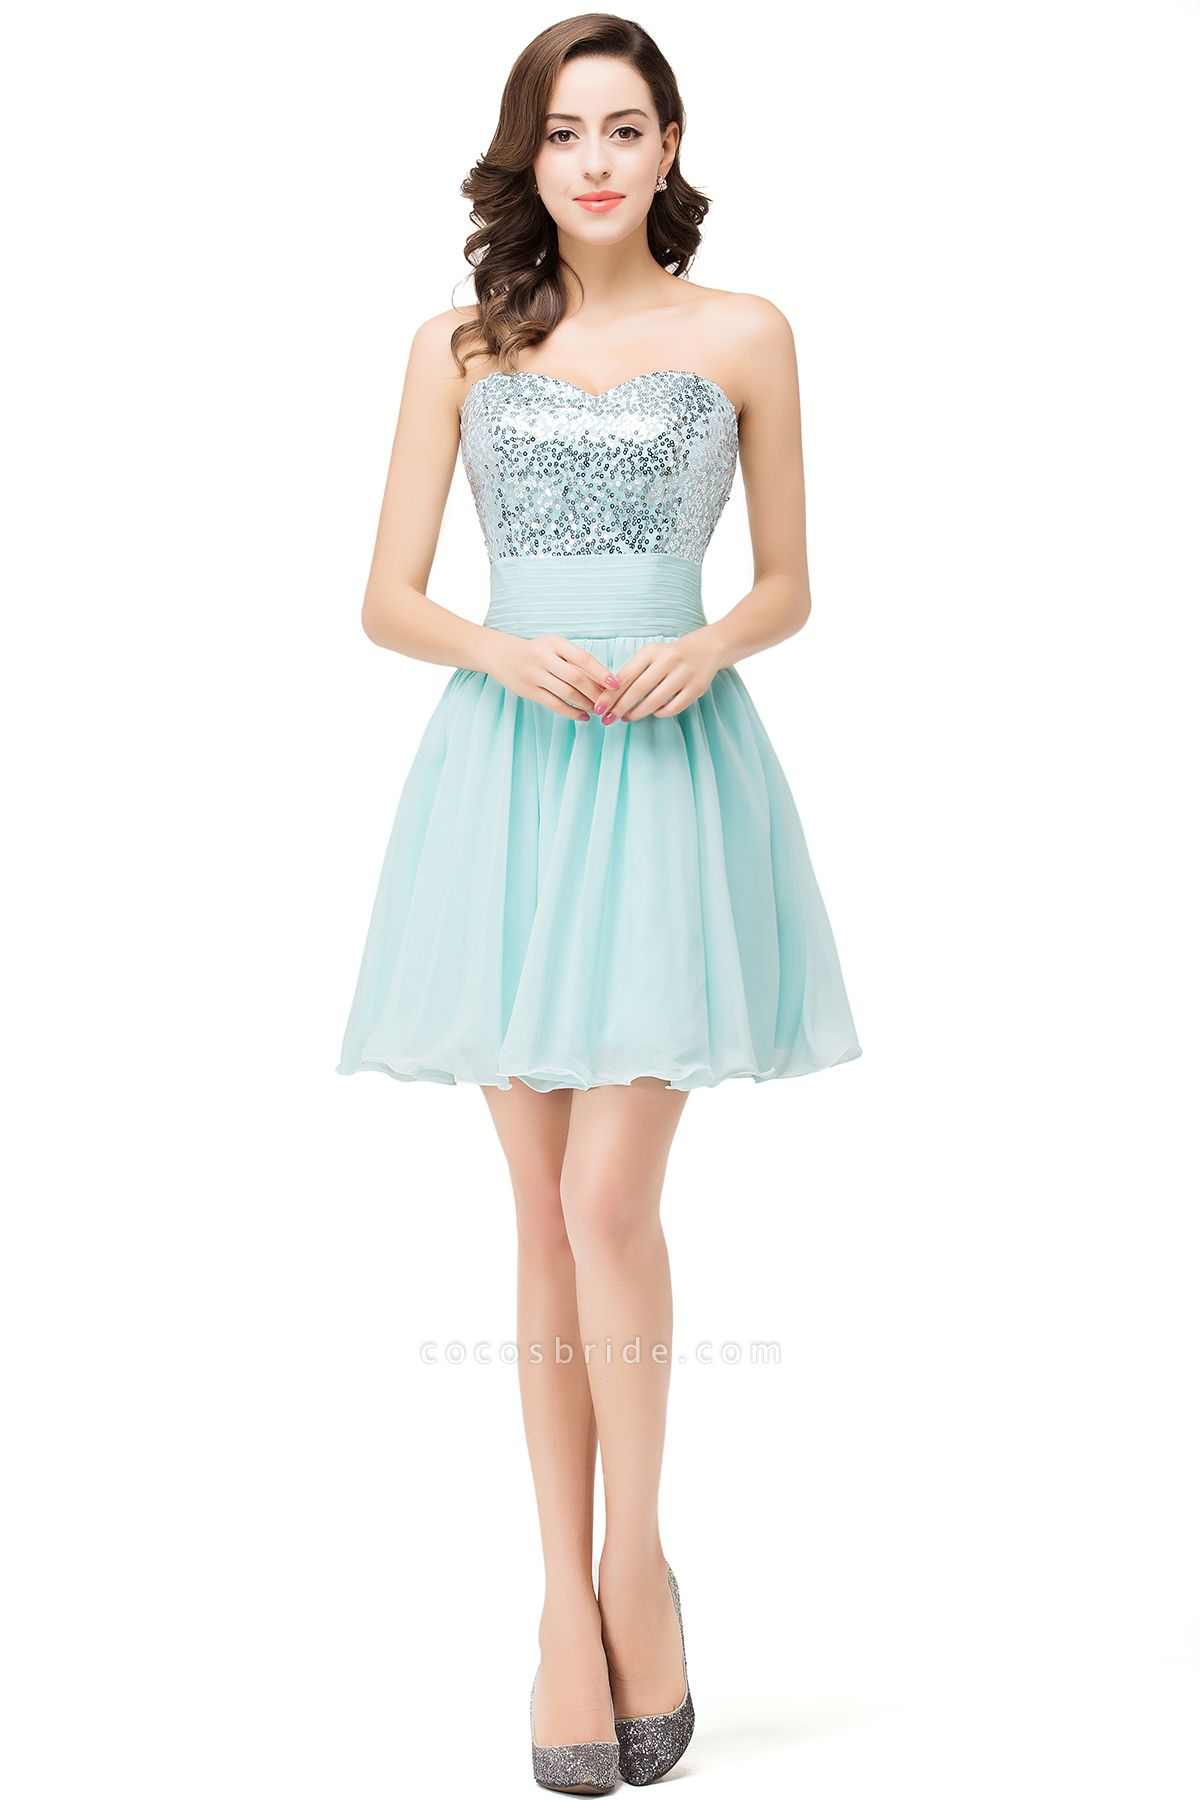 ESTELLA | A-line Sweetheart Sleeveless Chiffon Short Prom Dresses with Sequins